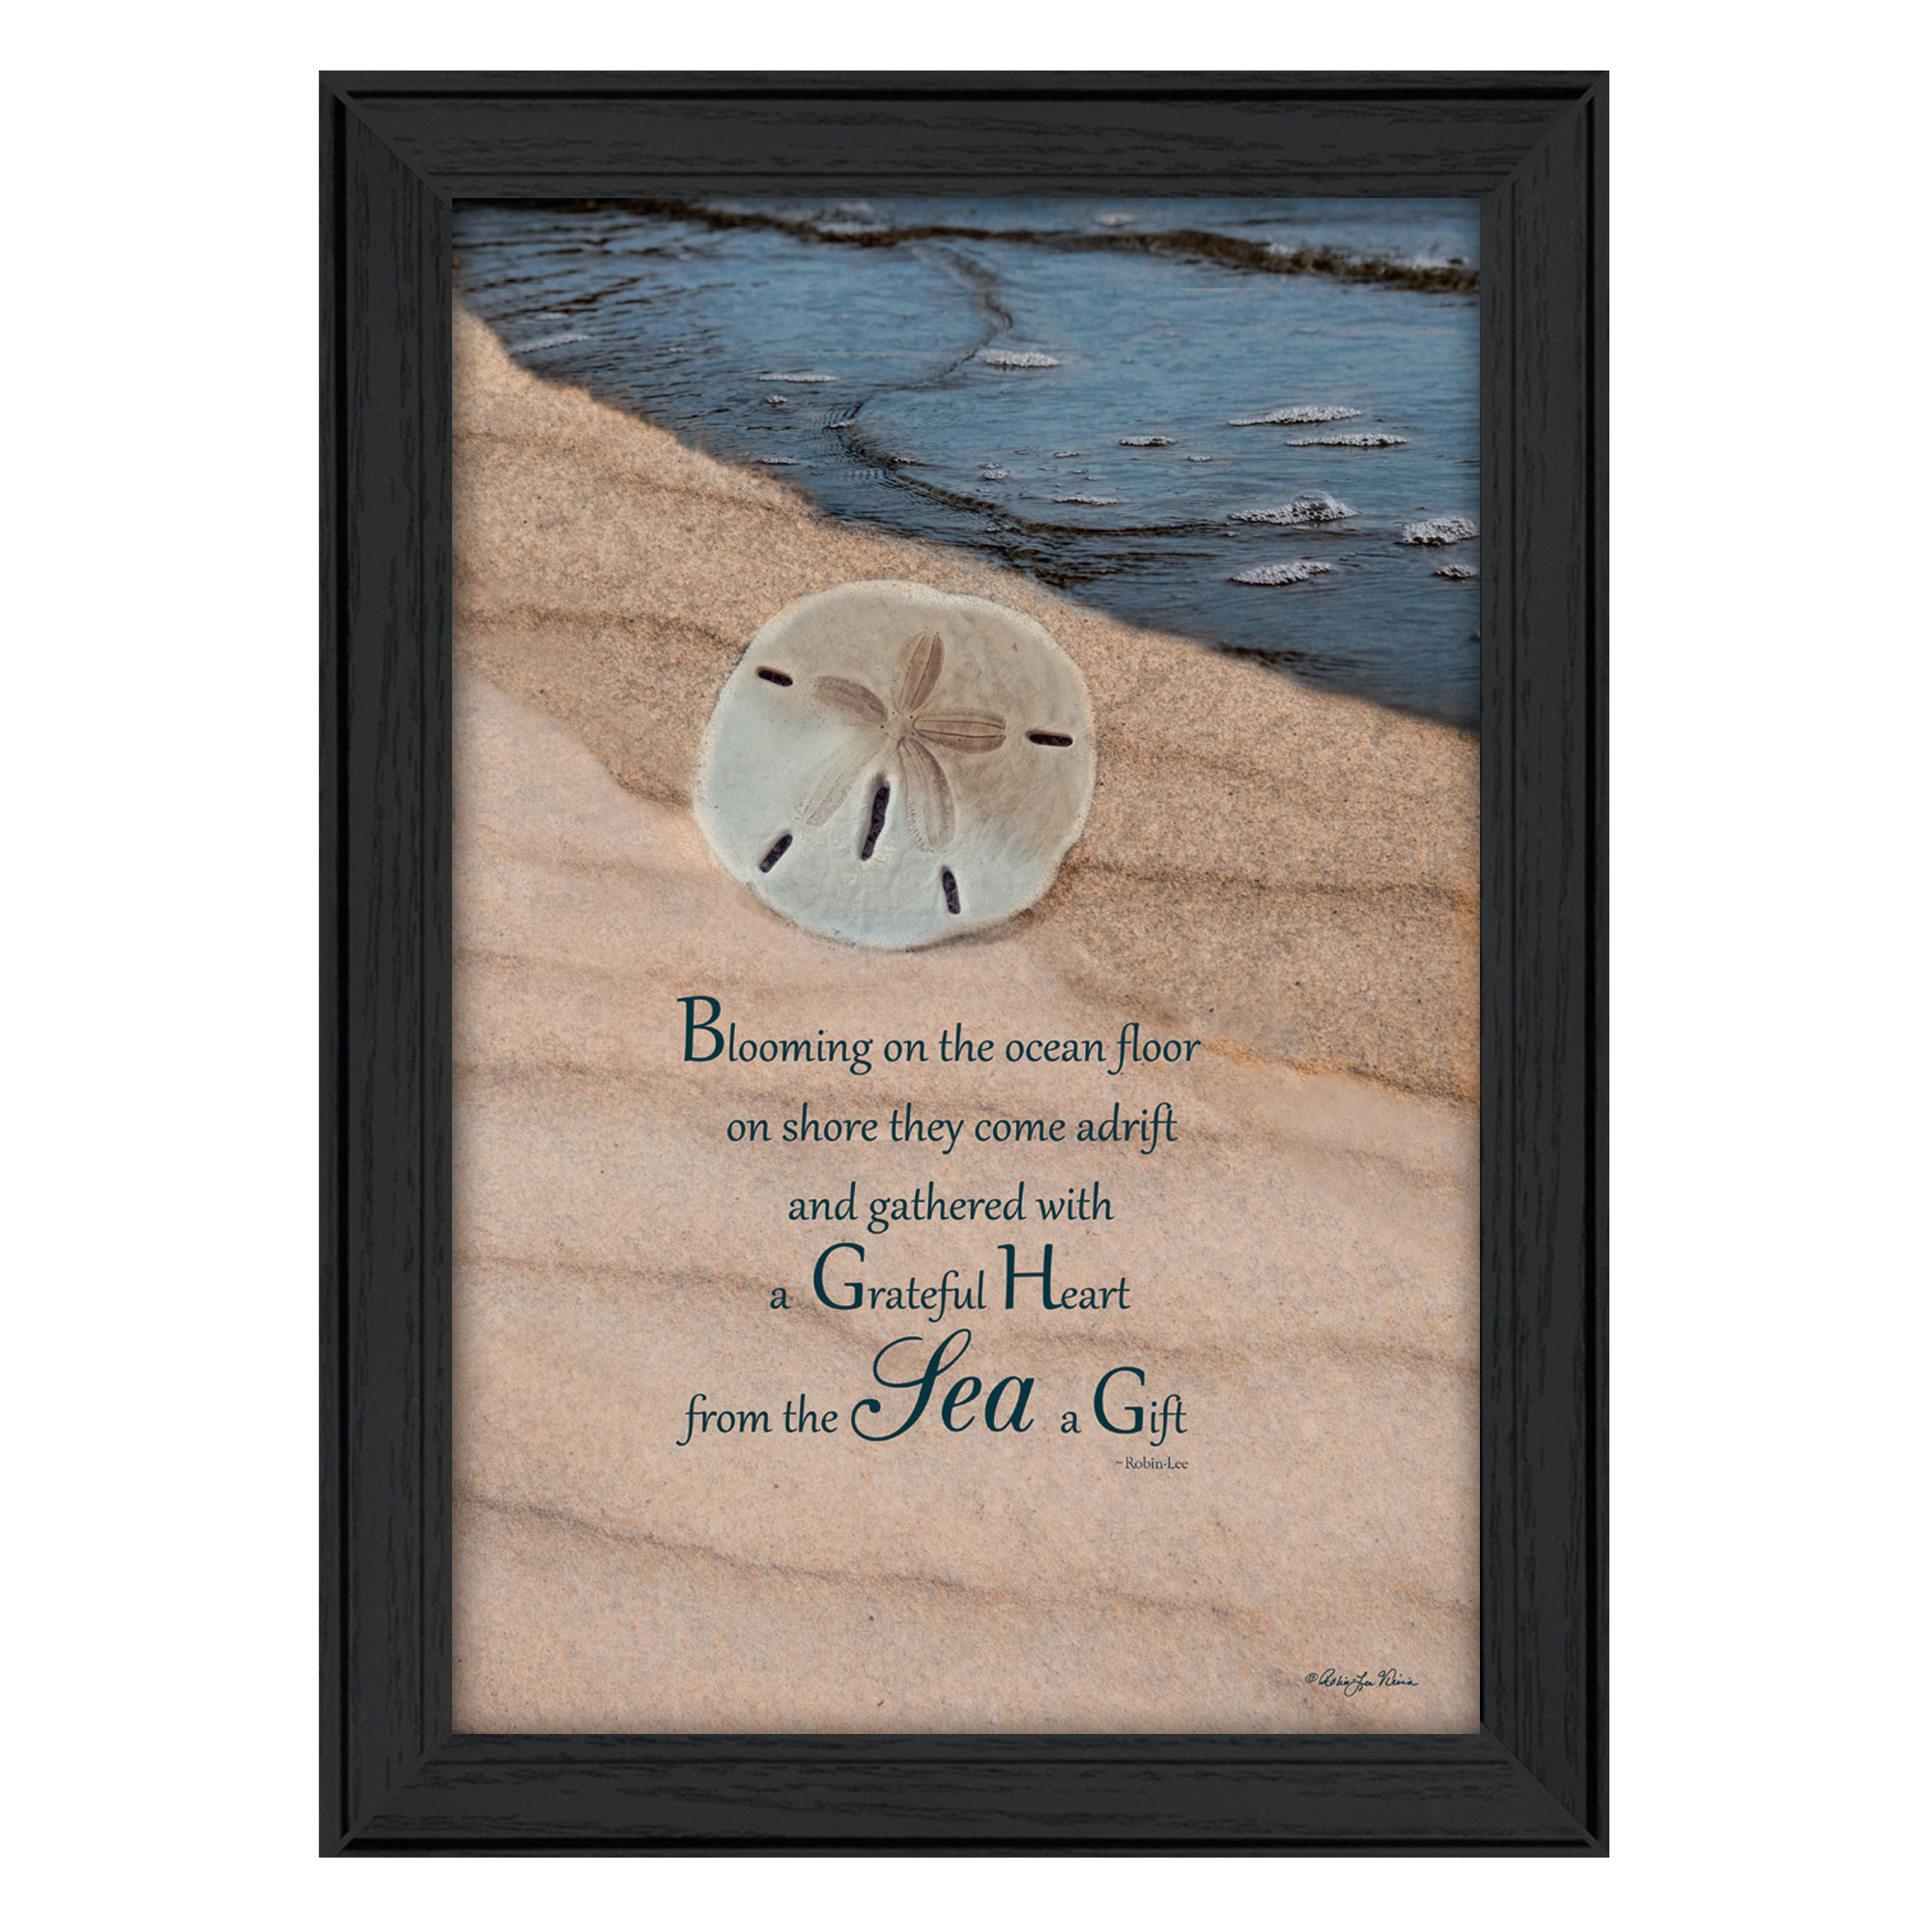 "Rlv423-405, ""A Gift"" is a 15""x 21"" framed art print by Robin Vieira. This print is a framed in a decorative black frame. A Gift from the beach???Sand Dollar. To view a matching vignette of this print search: V321-405. The print has a protective, archival finish (glass is not needed) and arrives ready to hang. Made in the USA with pride by skilled American workers * Made in the USA * Women Owned (Wbe) * Textured Artwork with a 'rolled on' acid free acrylic coating to create a canvas painting effect. No glass is necessary. * UV protectant coating protects artwork from fading. * Arrives Ready to Hang"